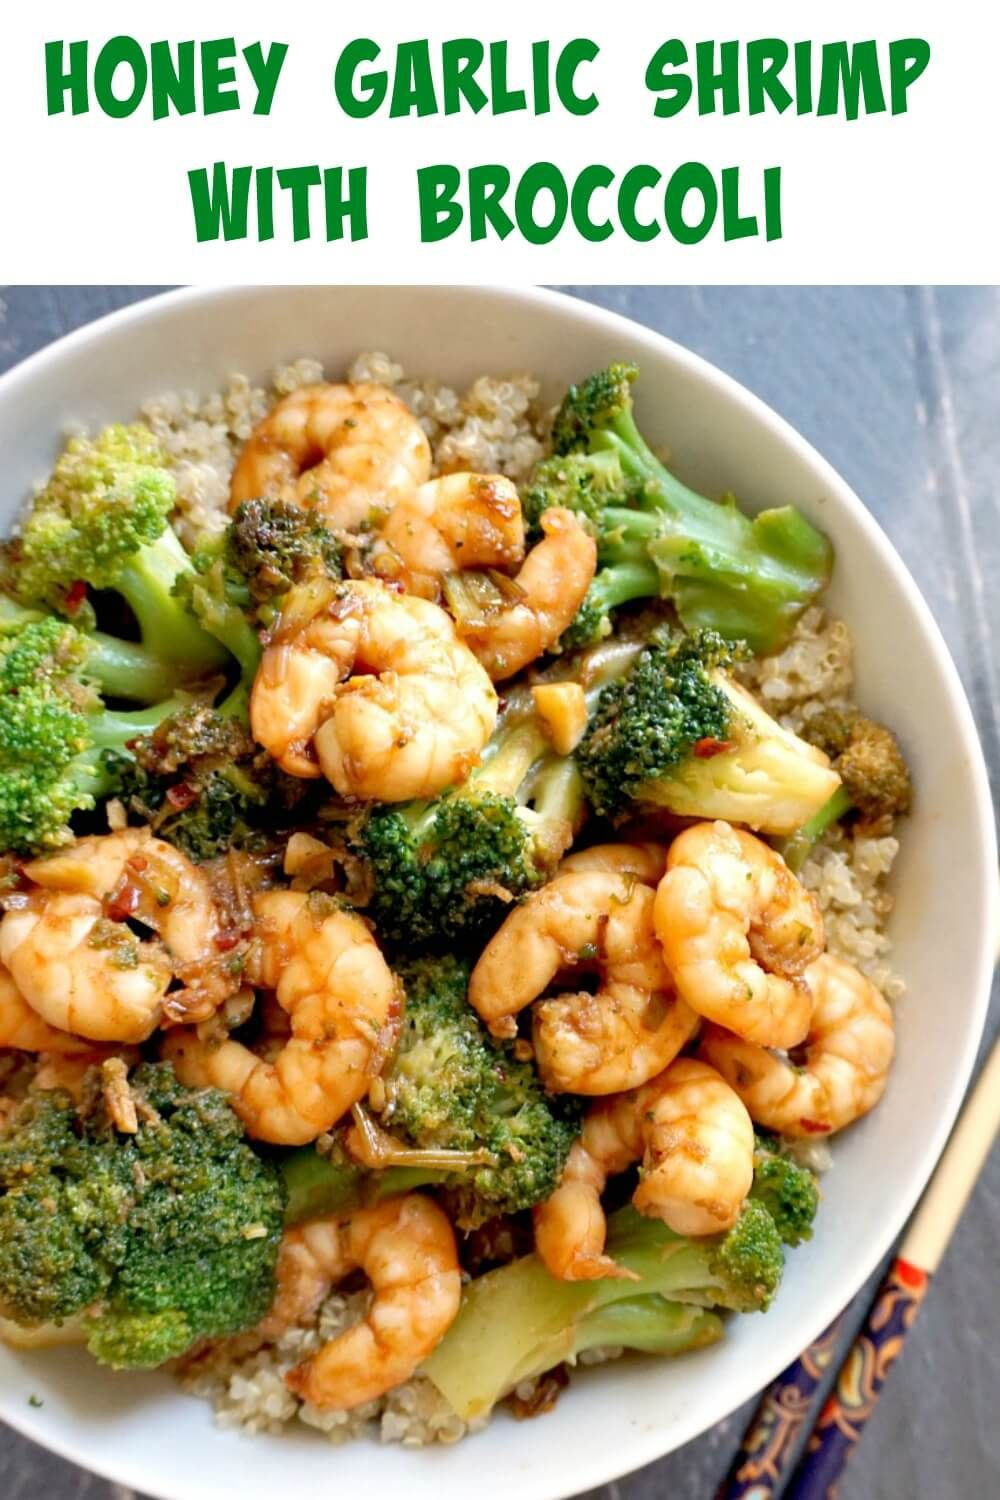 Healthy Honey Garlic Shrimp and Broccoli - My Gorgeous Recipes